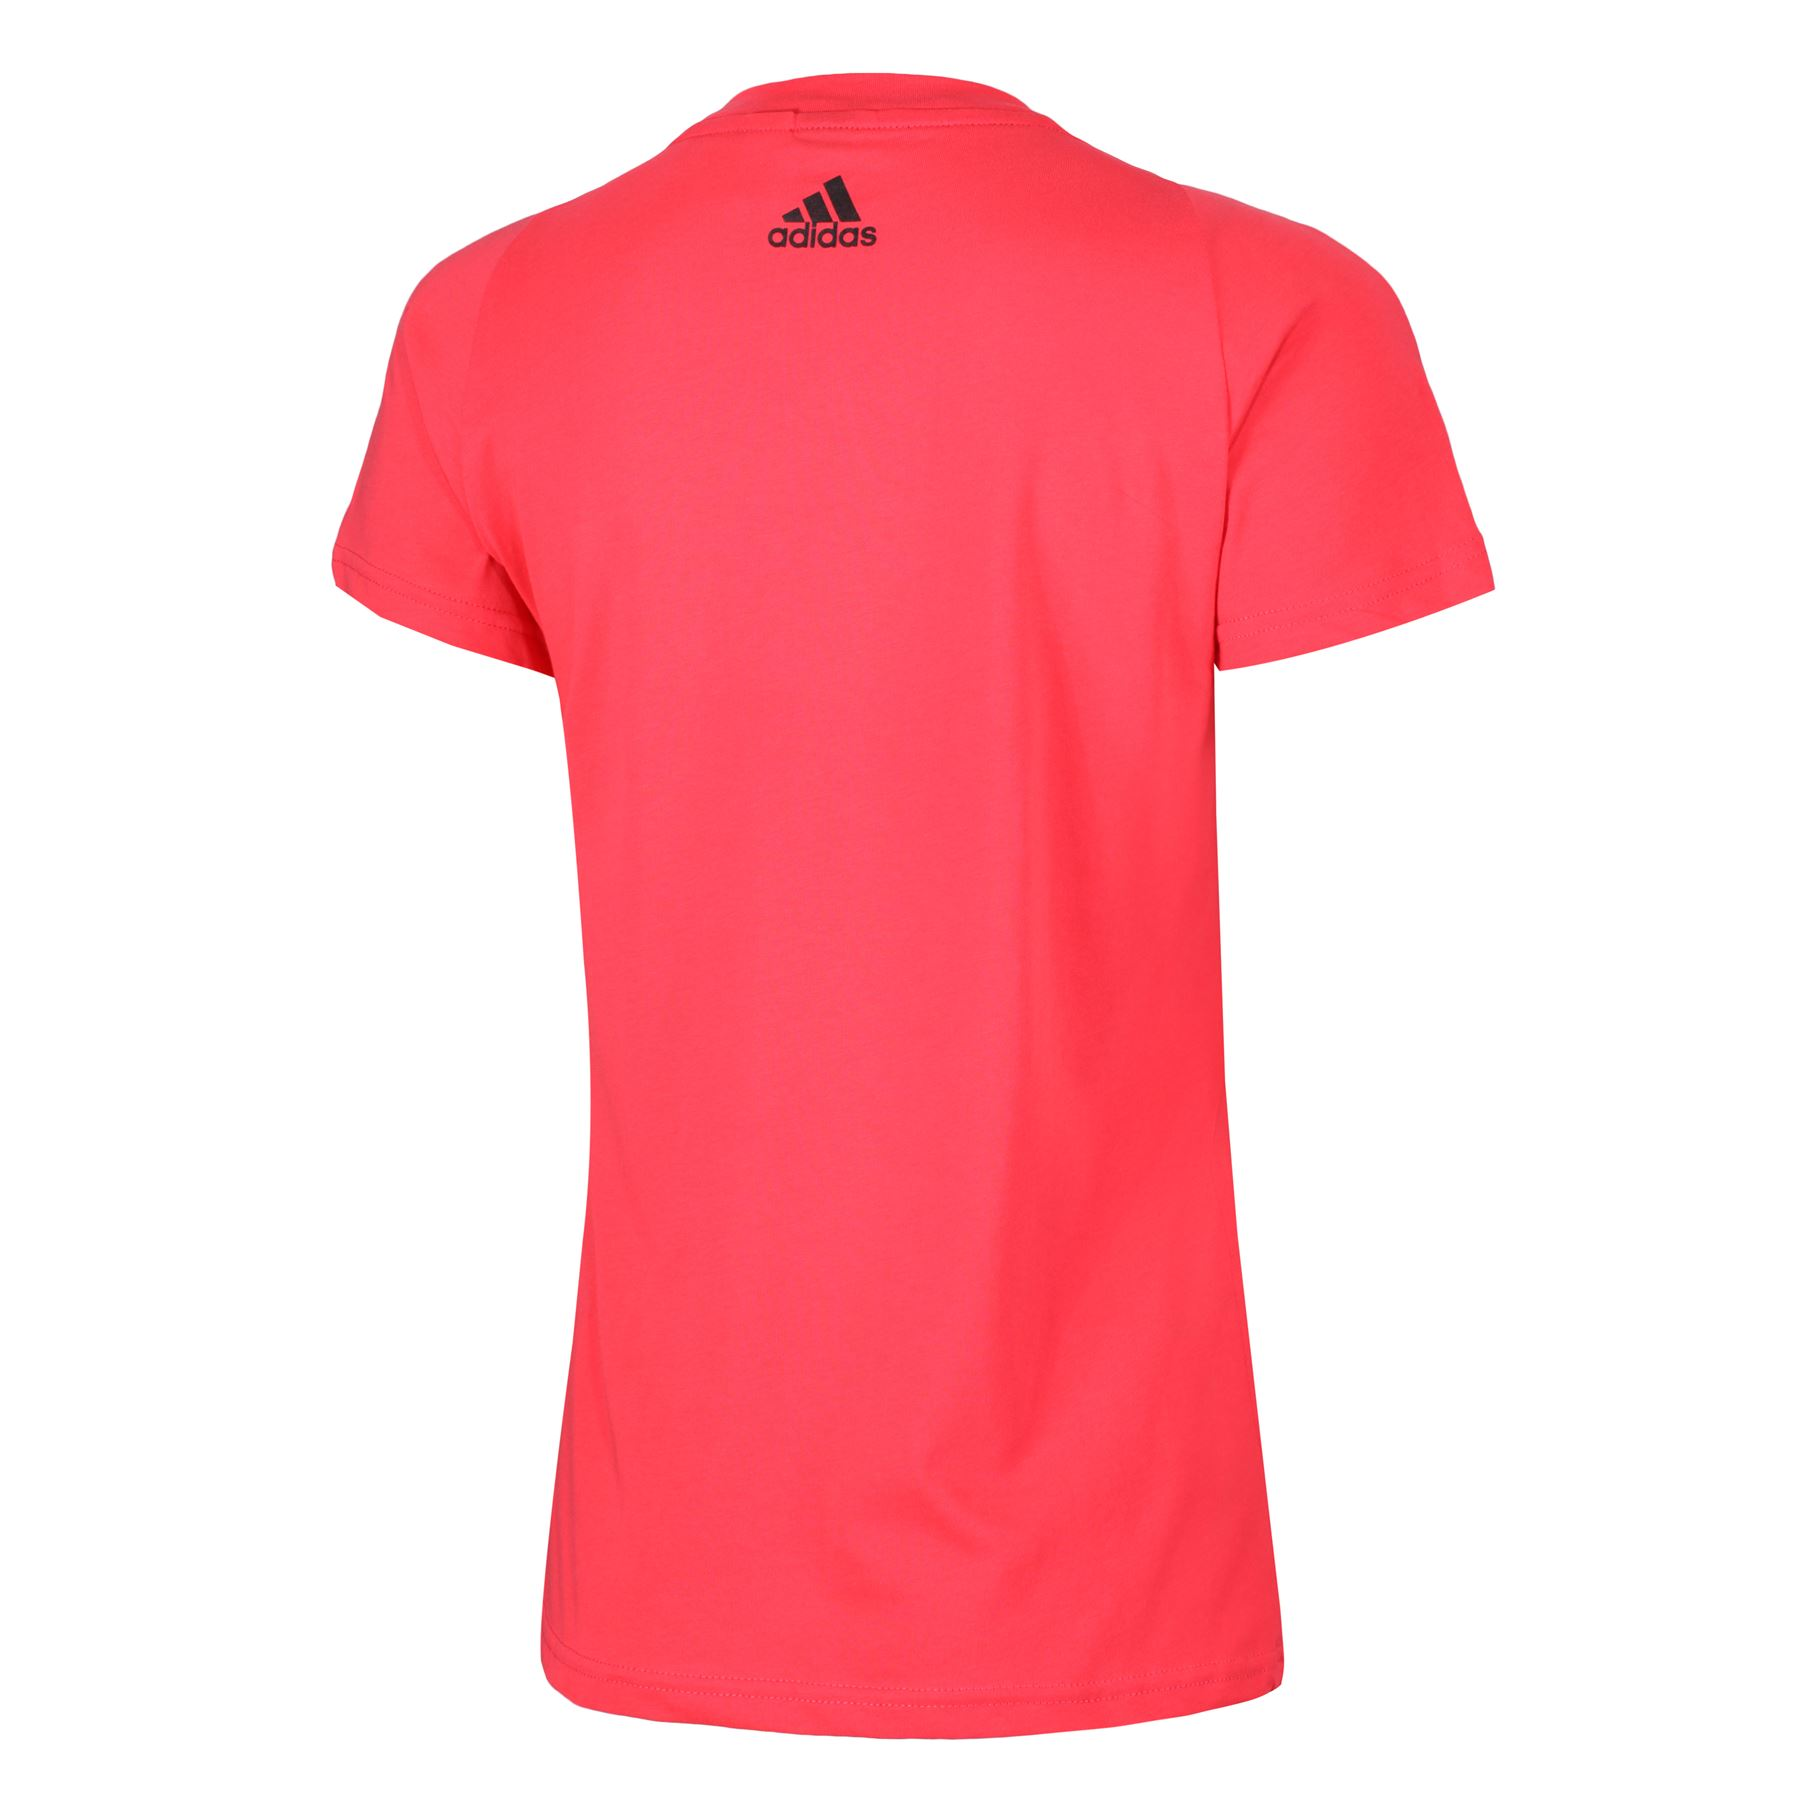 adidas-WOMEN-039-S-ESSENTIALS-LINEAR-T-SHIRT-GYM-BLACK-PINK-WHITE-NAVY-GIRLS-LADIES thumbnail 18